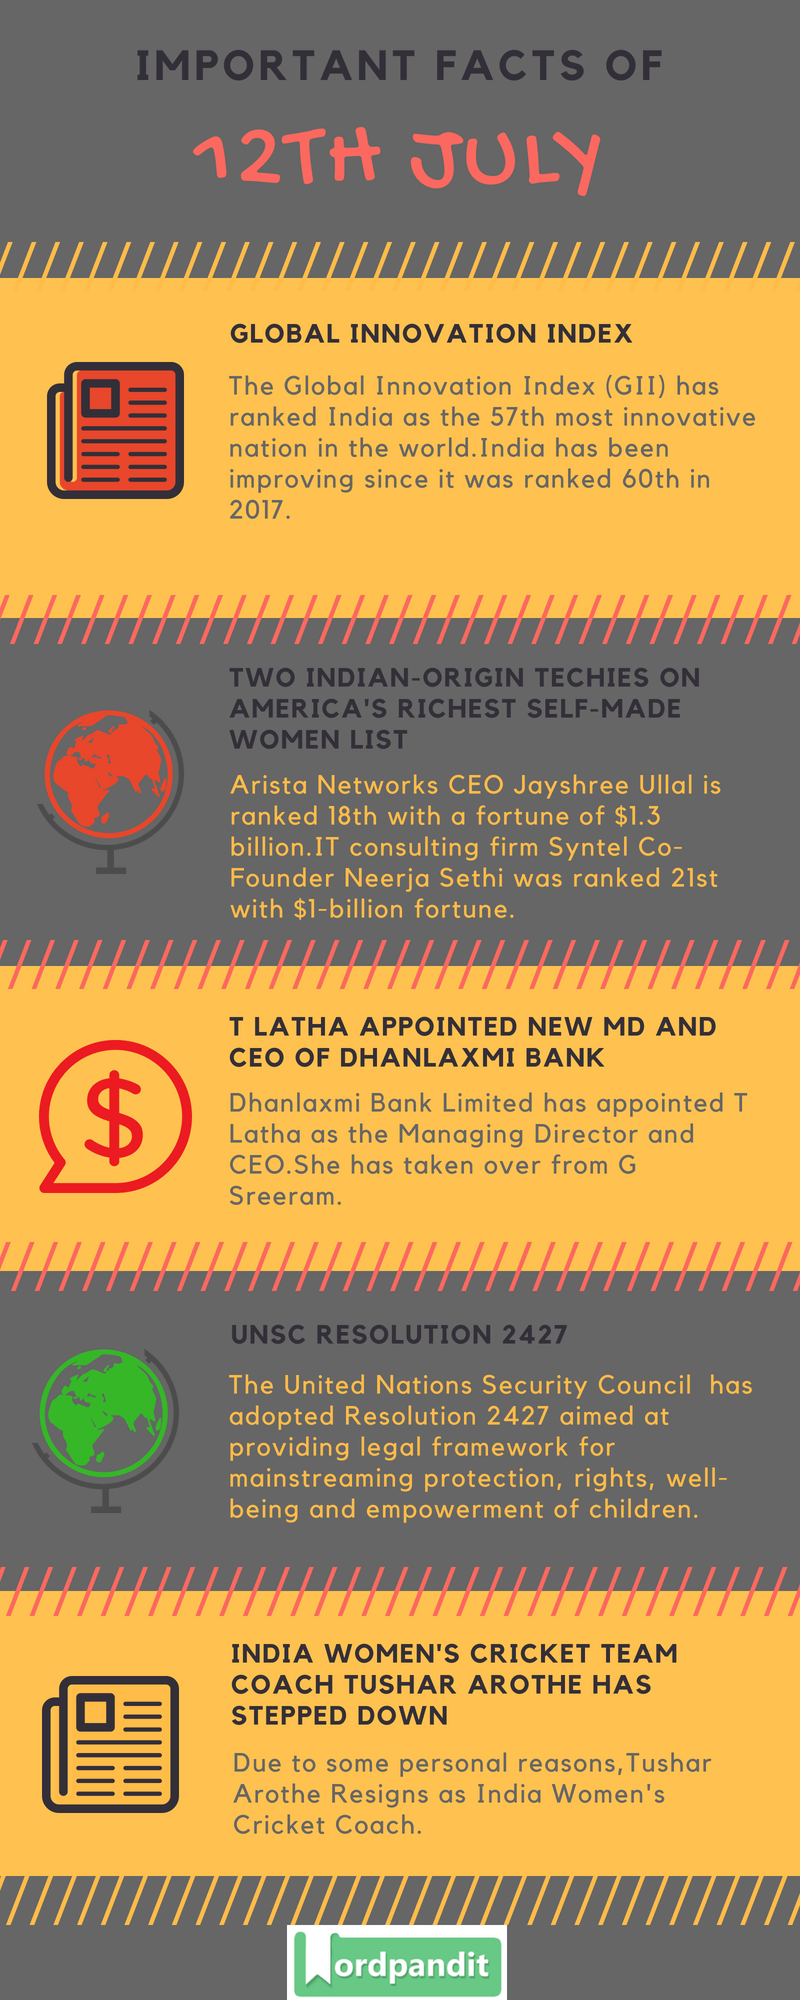 Daily Current Affairs 12 July 2018 Current Affairs Quiz July 12 2018 Current Affairs Infographic